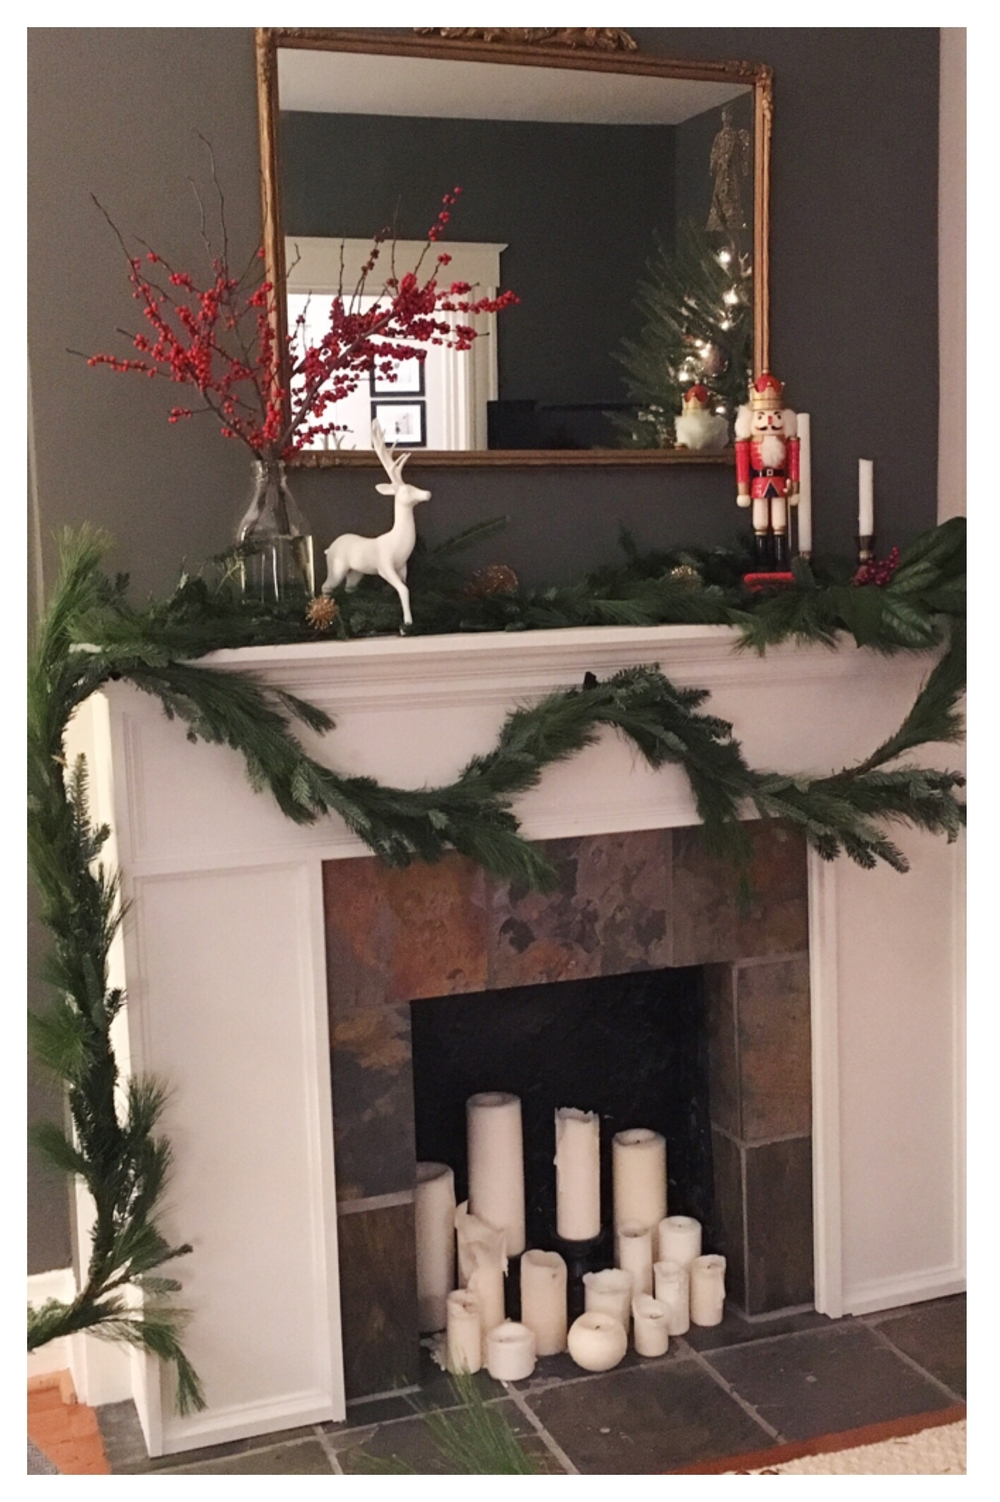 The finished mantel, with greenery and a touch of gold and red! I may even add a string of lights throughout the greenery. Too much?